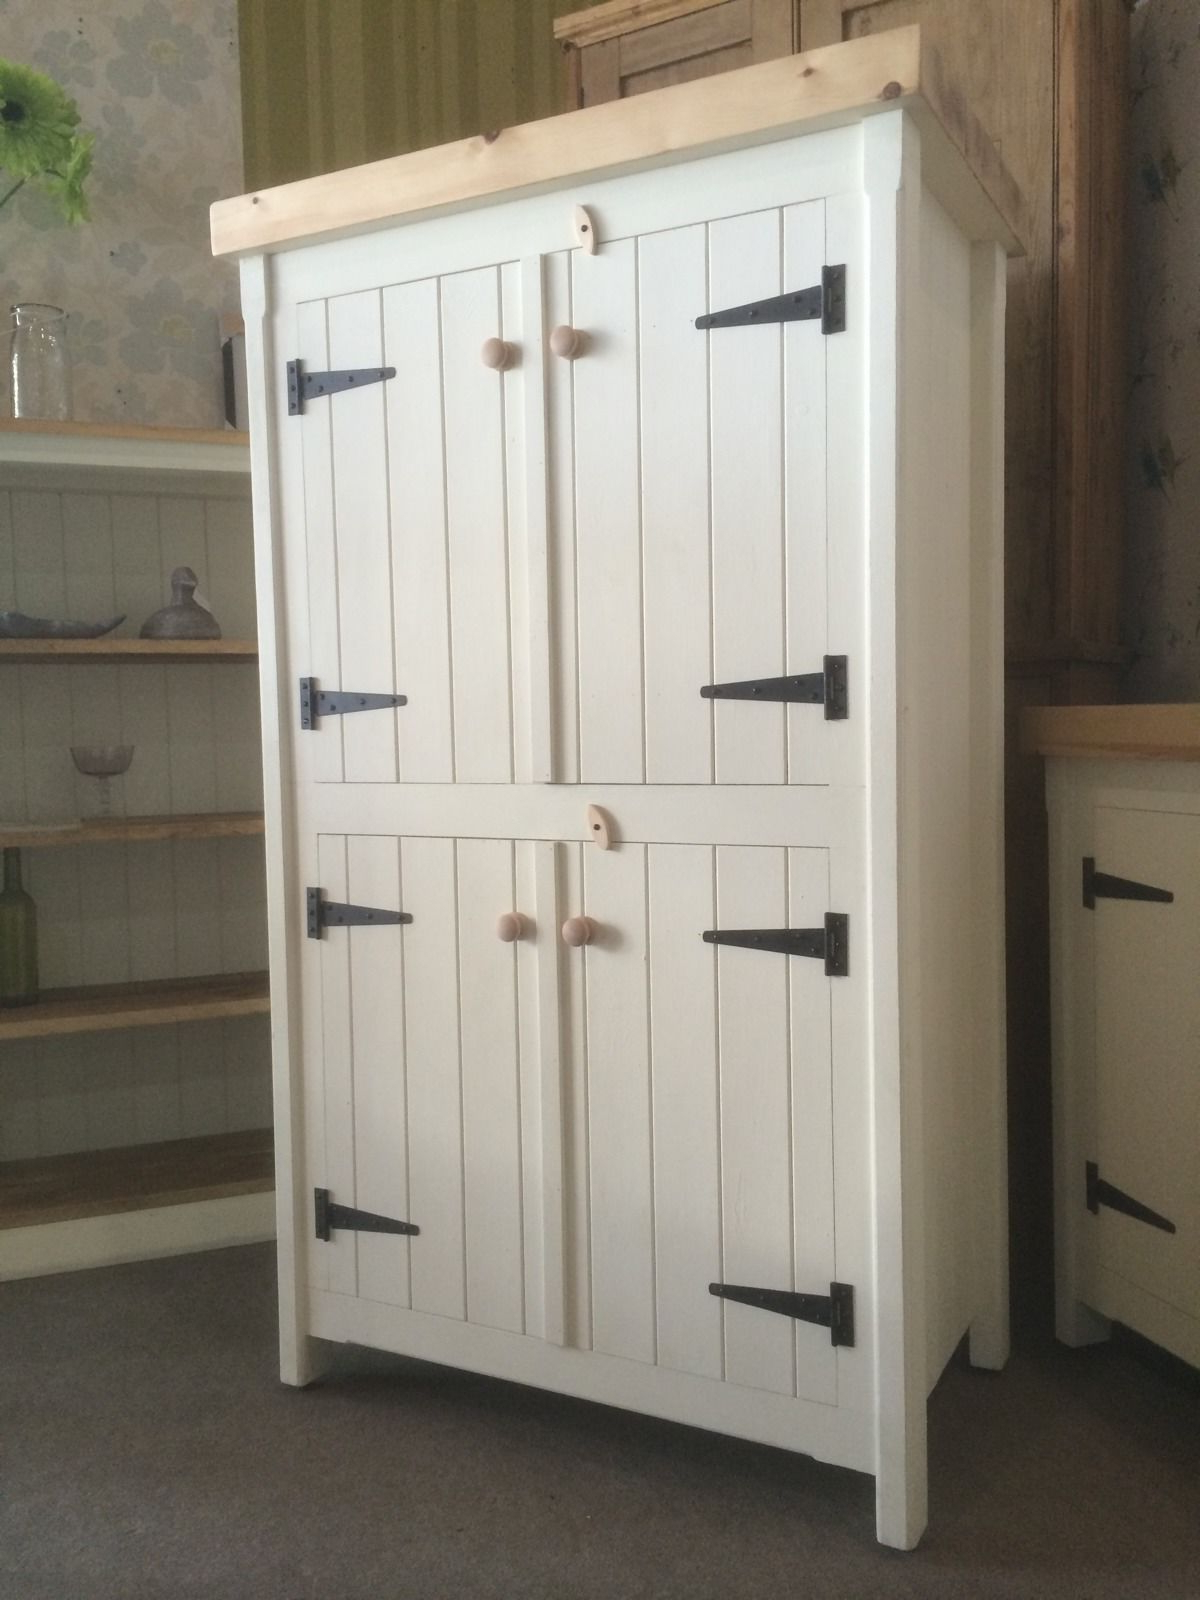 Natural South Pine Sideboards In Popular Rustic Wooden Pine Freestanding Kitchen Handmade Cupboard Unit (View 16 of 20)